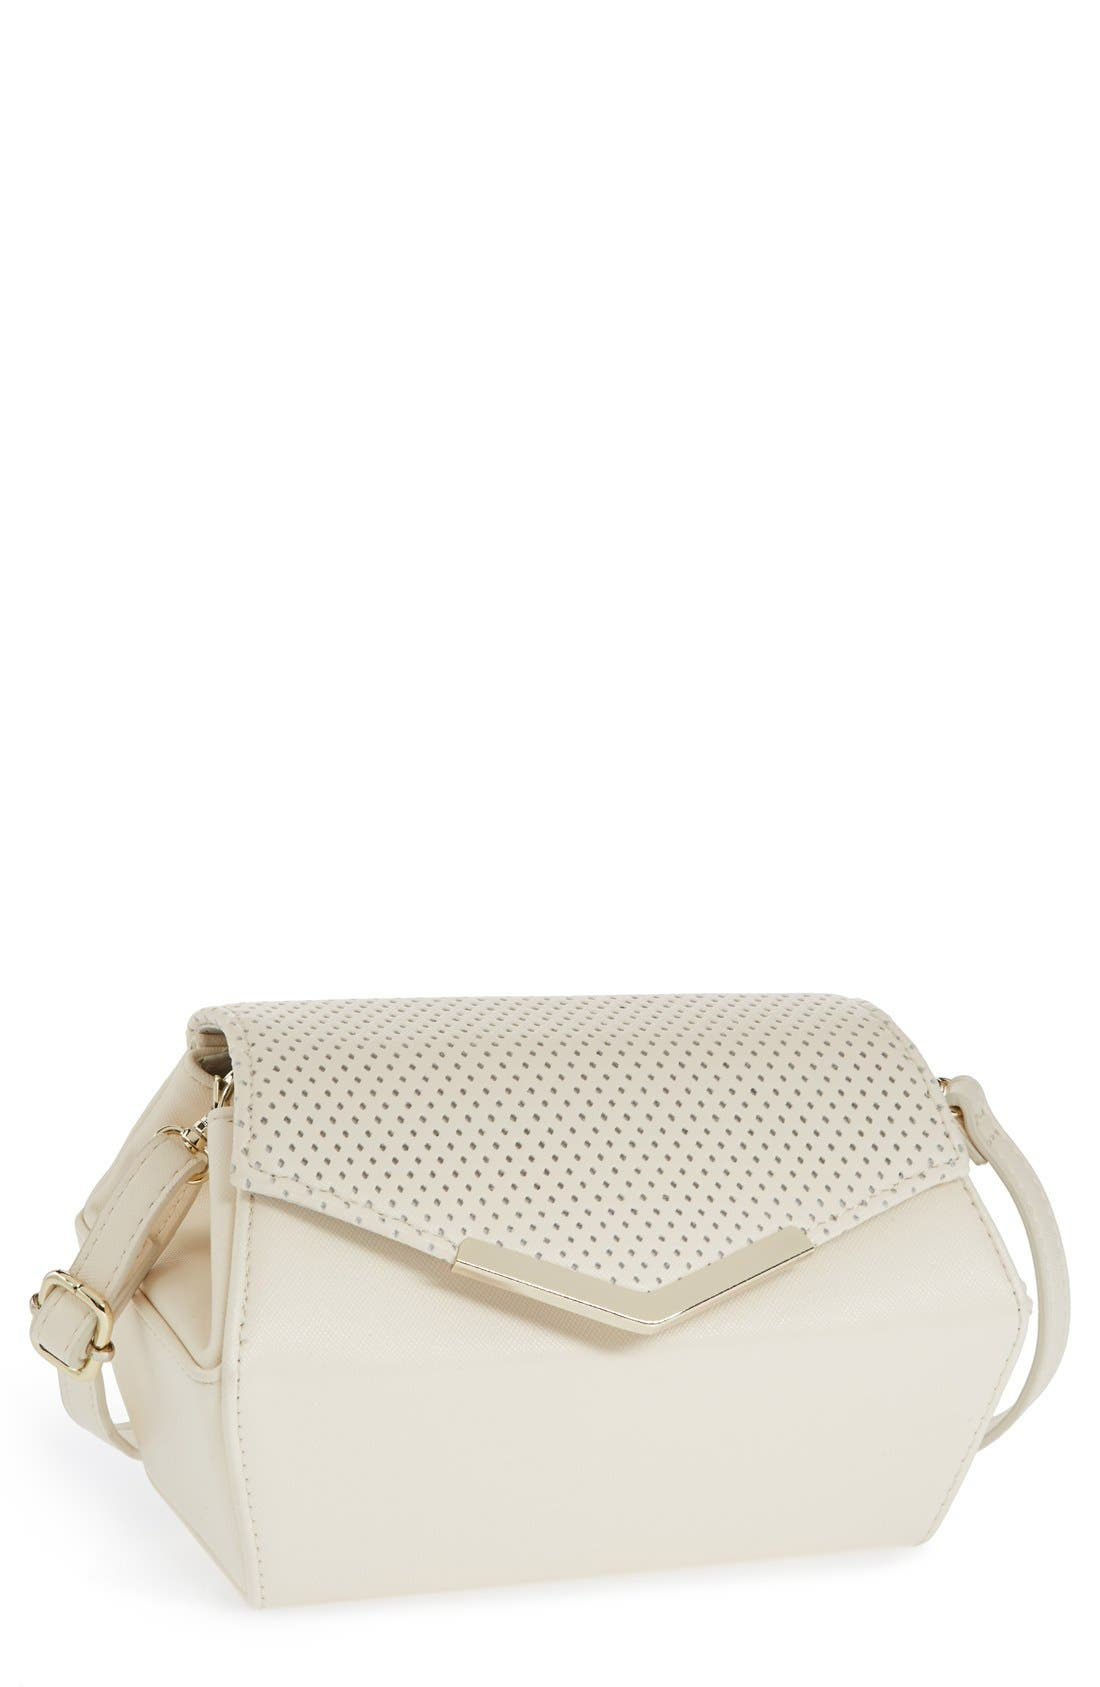 Alternate Image 1 Selected - POVERTY FLATS by rian Perforated Crossbody Bag